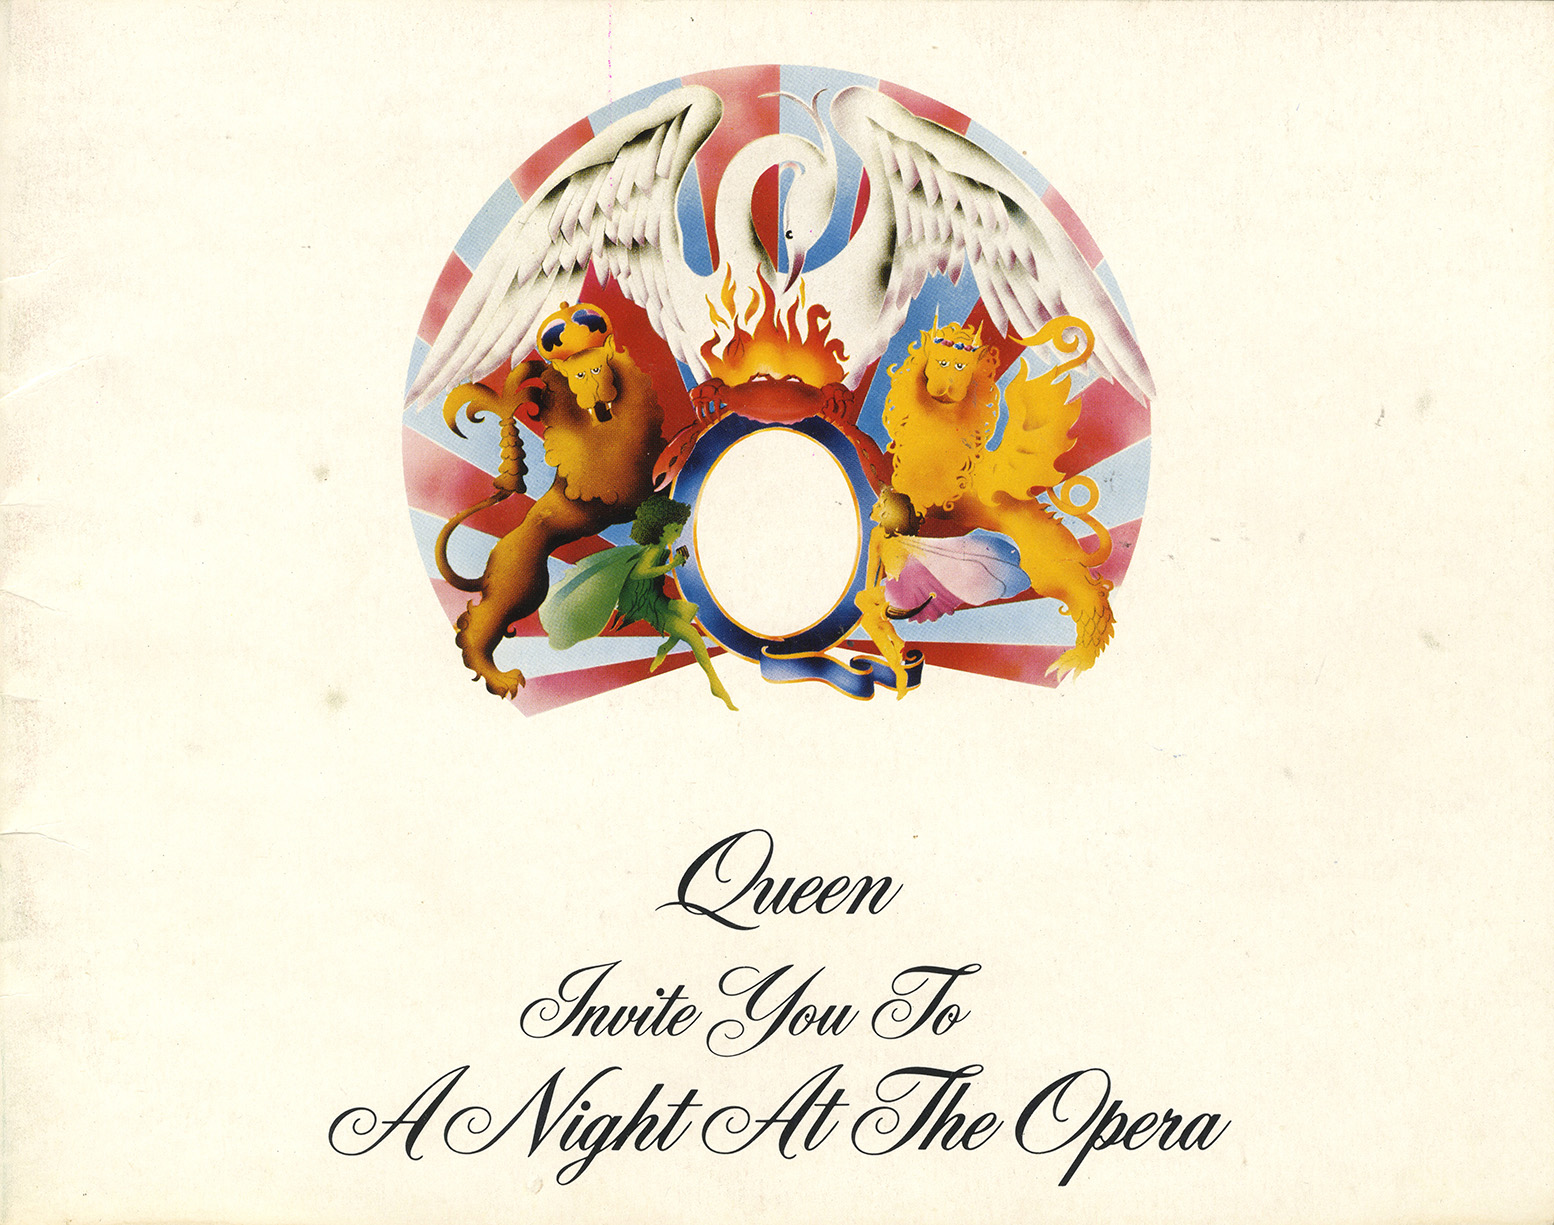 A Night At The Opera tour program (UK)